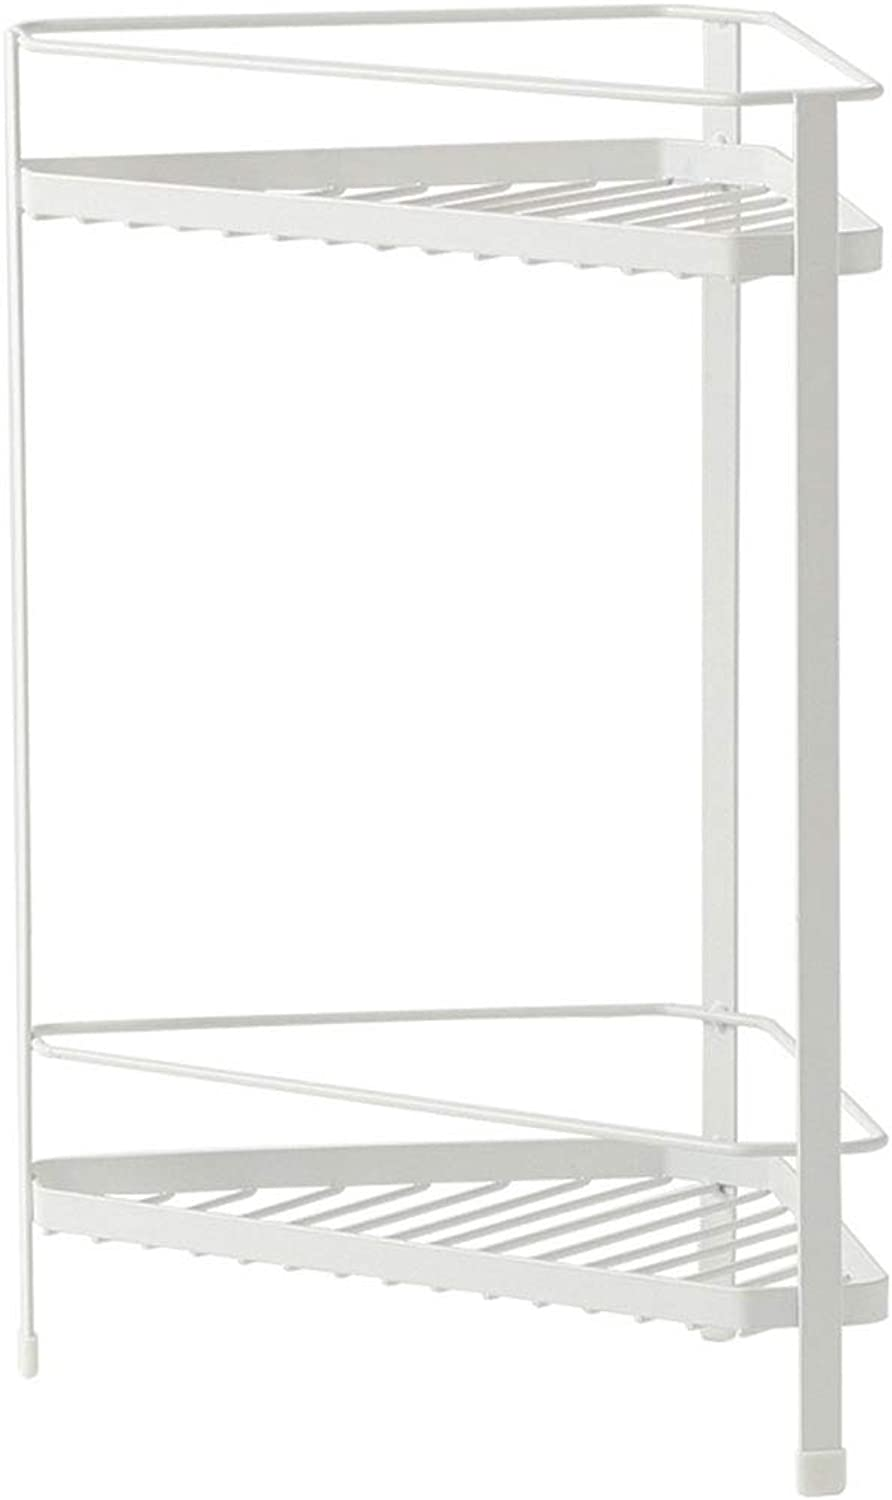 Feifei Storage Rack Wrought Iron White Household Triangle Fan-Shaped Multi-Function 2 Layer Storage Rack 19.5  19.5  39CM